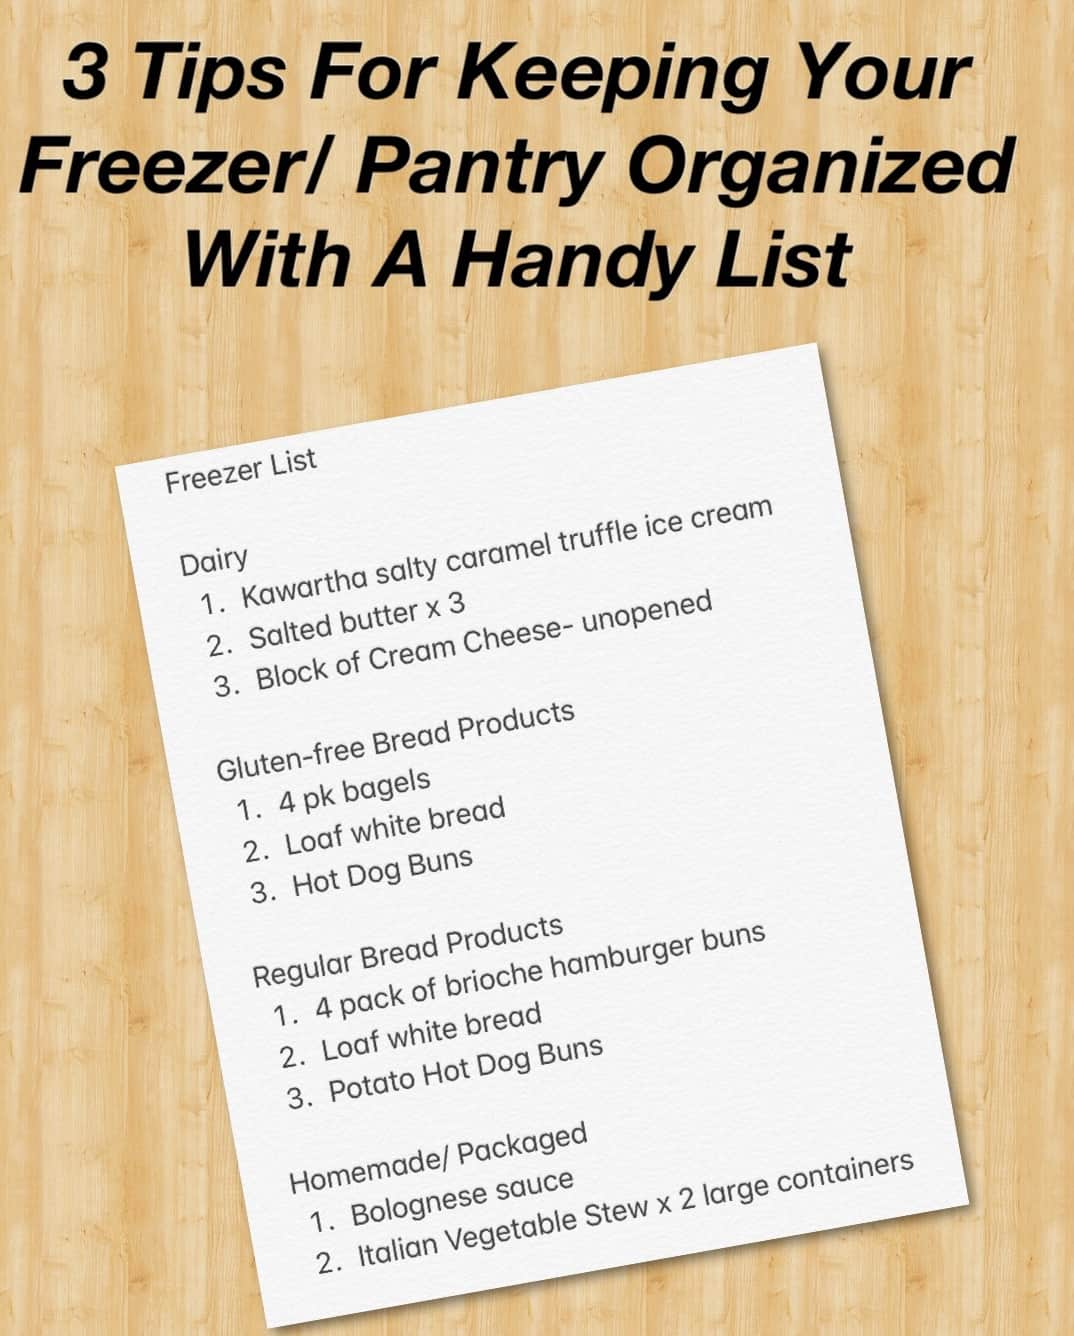 Freezer and Pantry Inventory